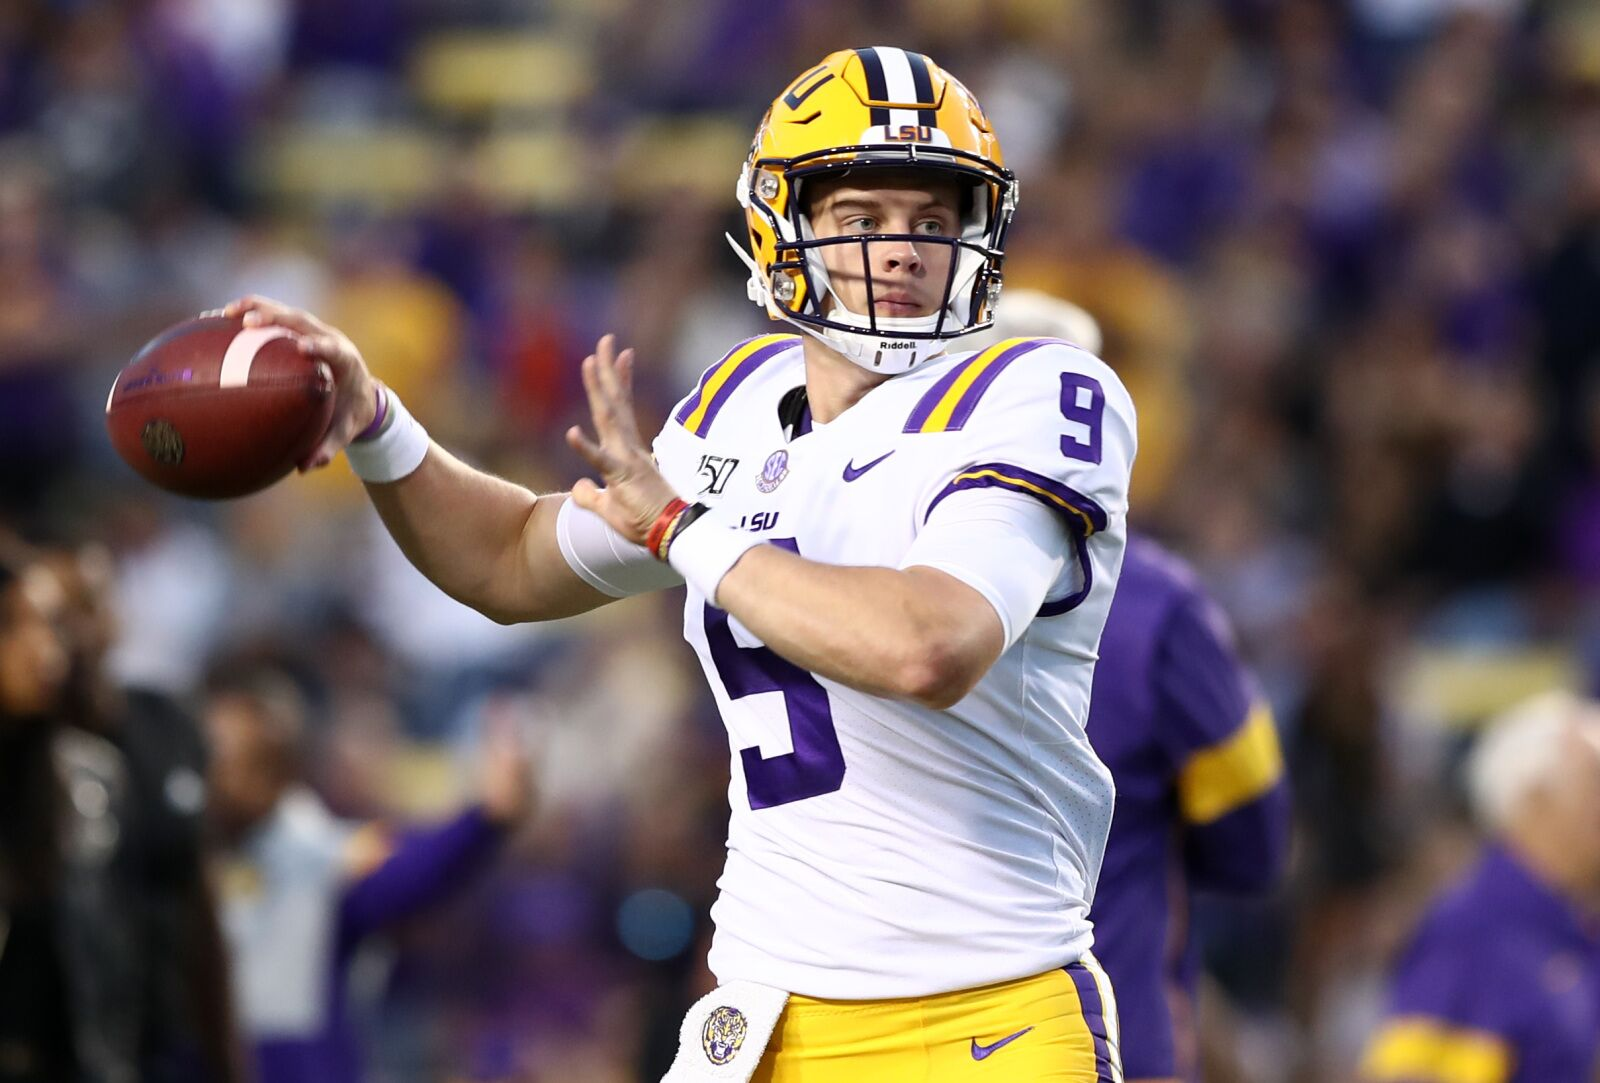 AP Poll Week 8 Top 25 winners and losers: LSU up to No. 2; Georgia, Florida cling to Top 10